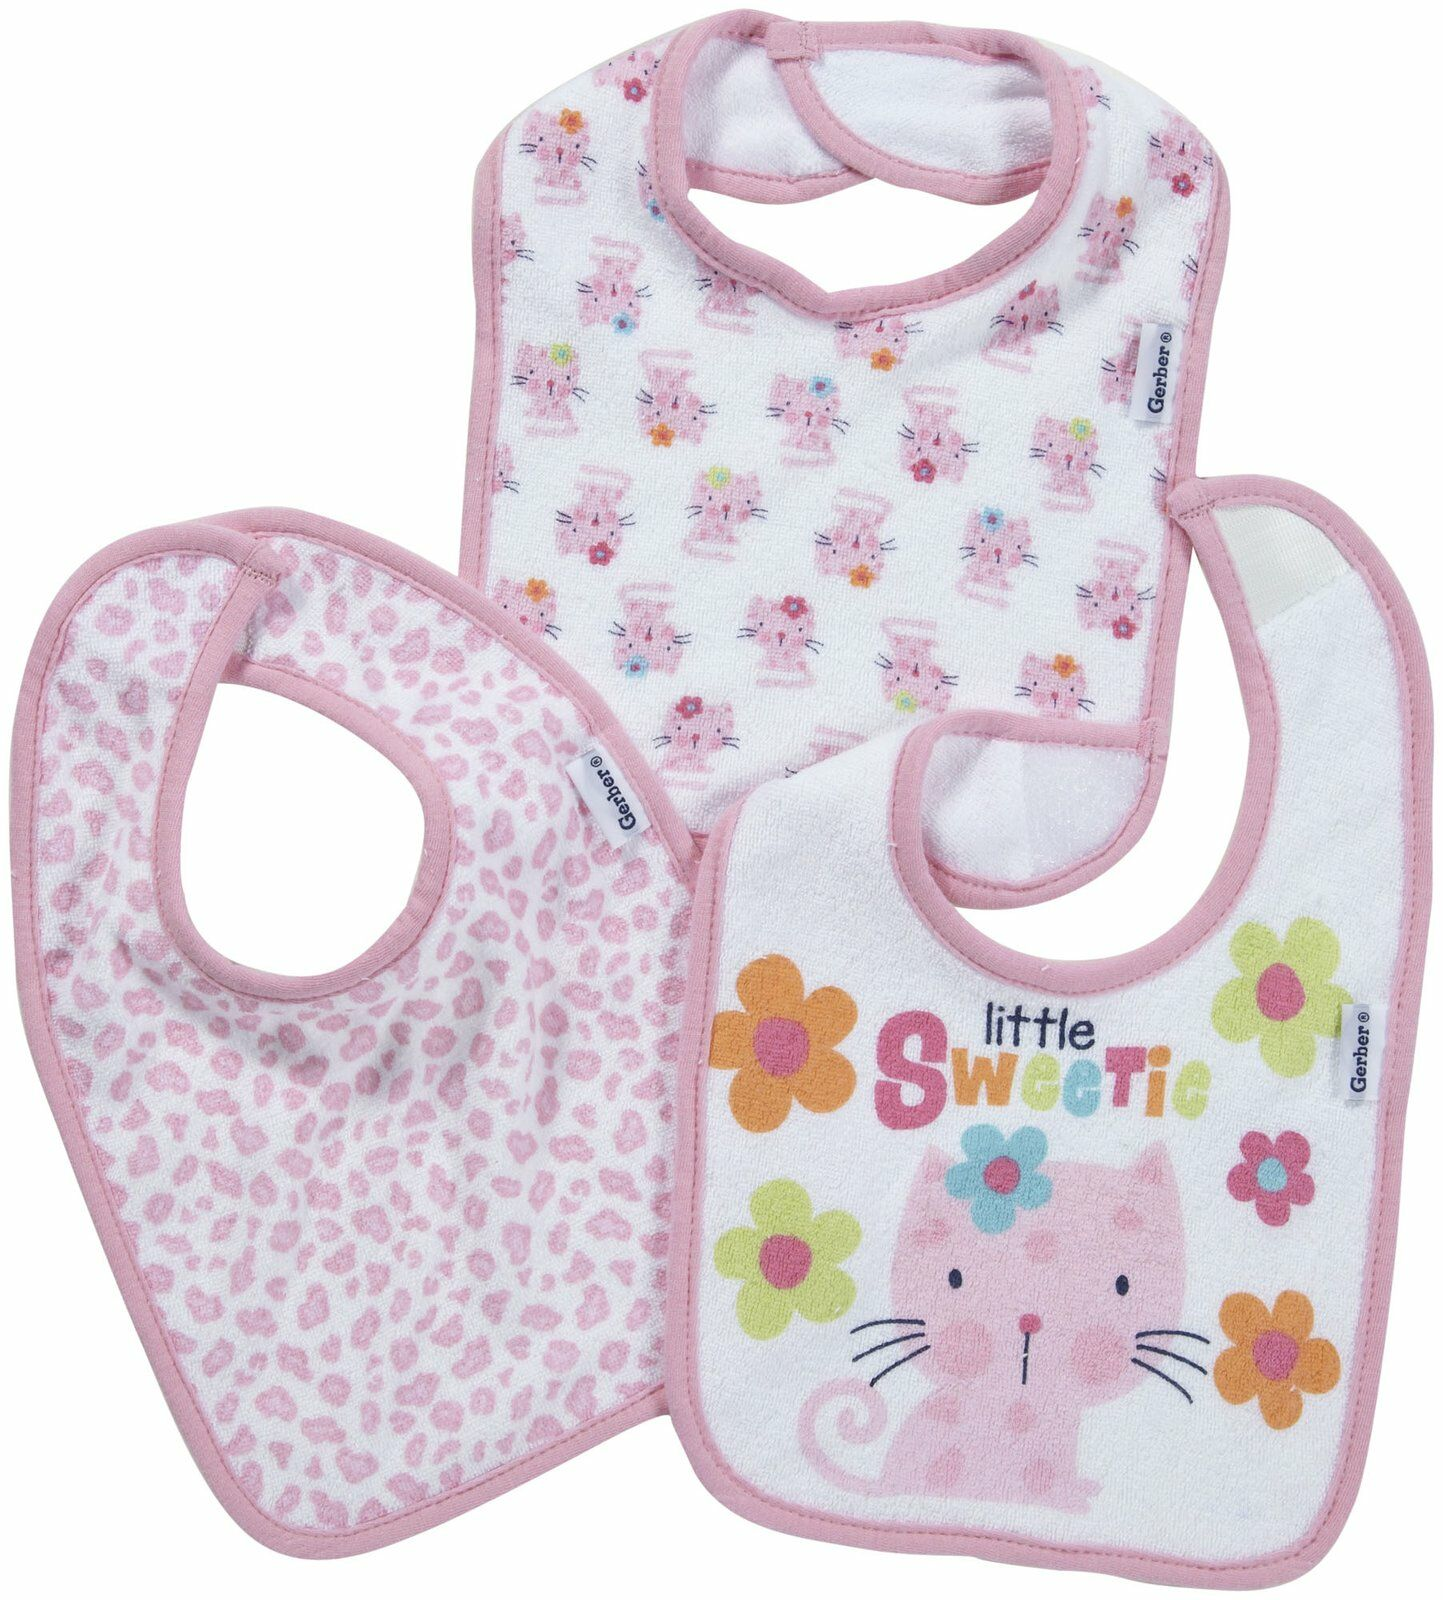 Baby Bibs - Girl's Colors (Baby Pink, Raspberry, & Lime Green) $ $ Compare.